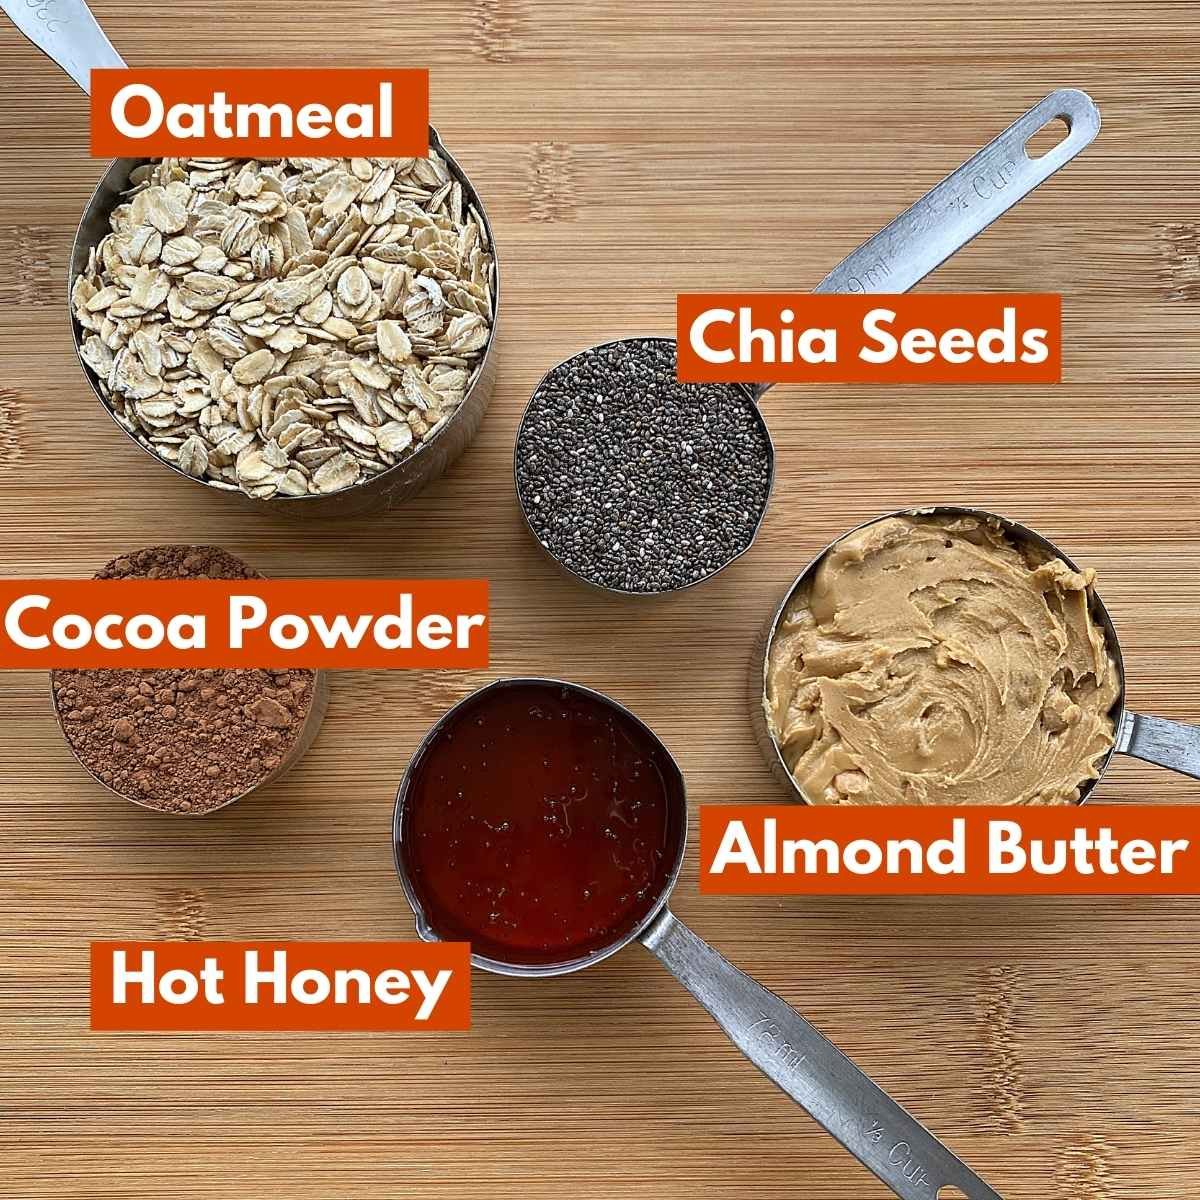 5 Ingredients in measuring cups with labels: oatmeal, chia seeds, cocoa powder, almond butter, hot honey.